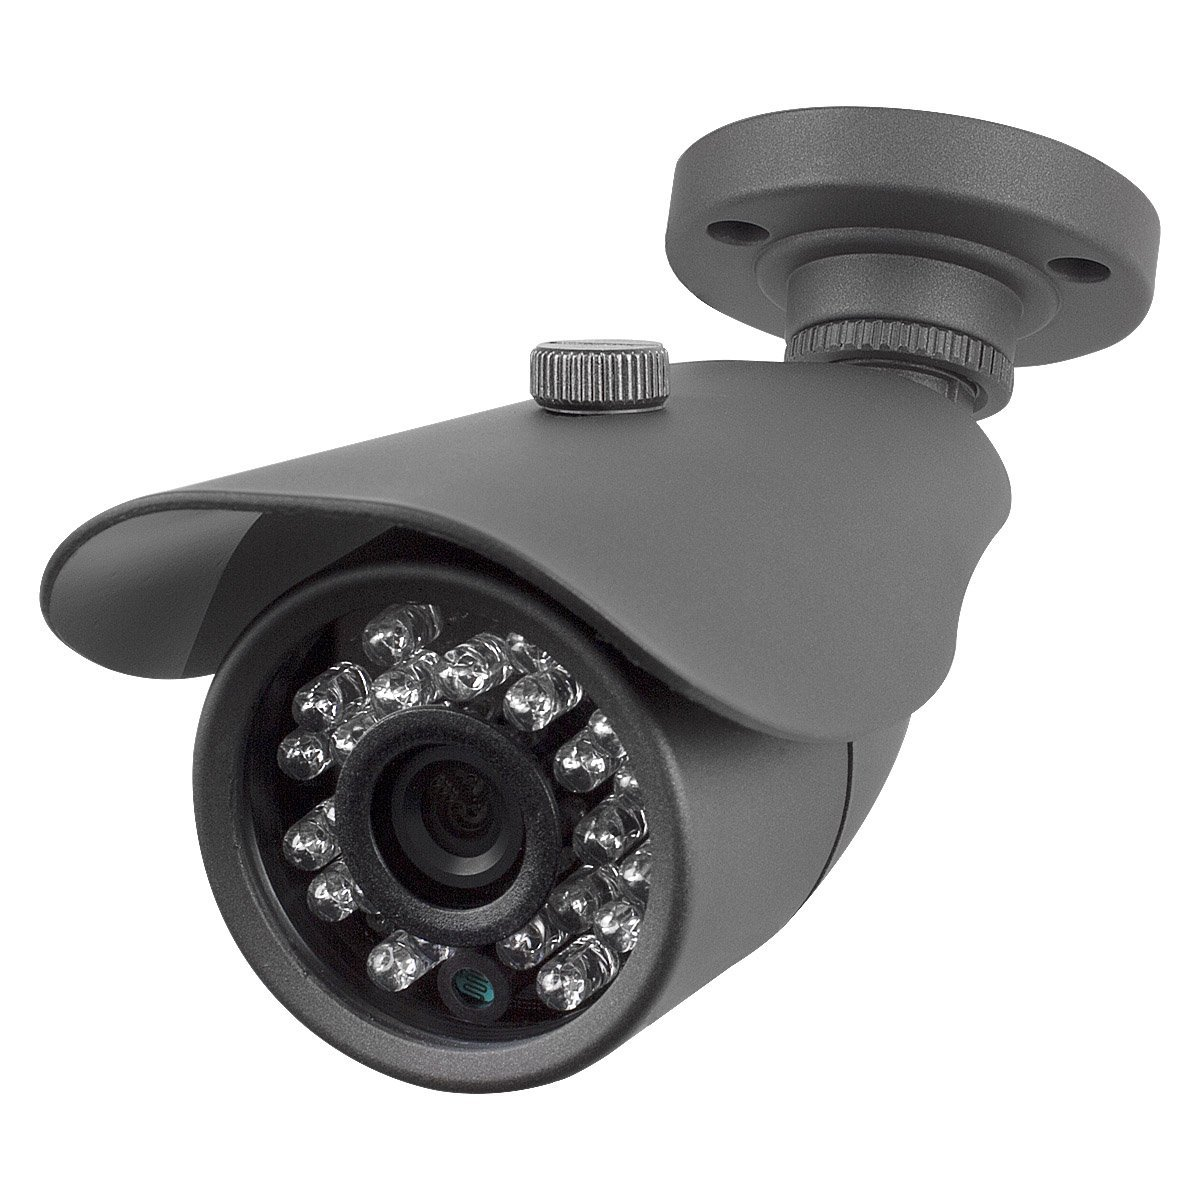 Best Vision Systems Night Vision Video Security